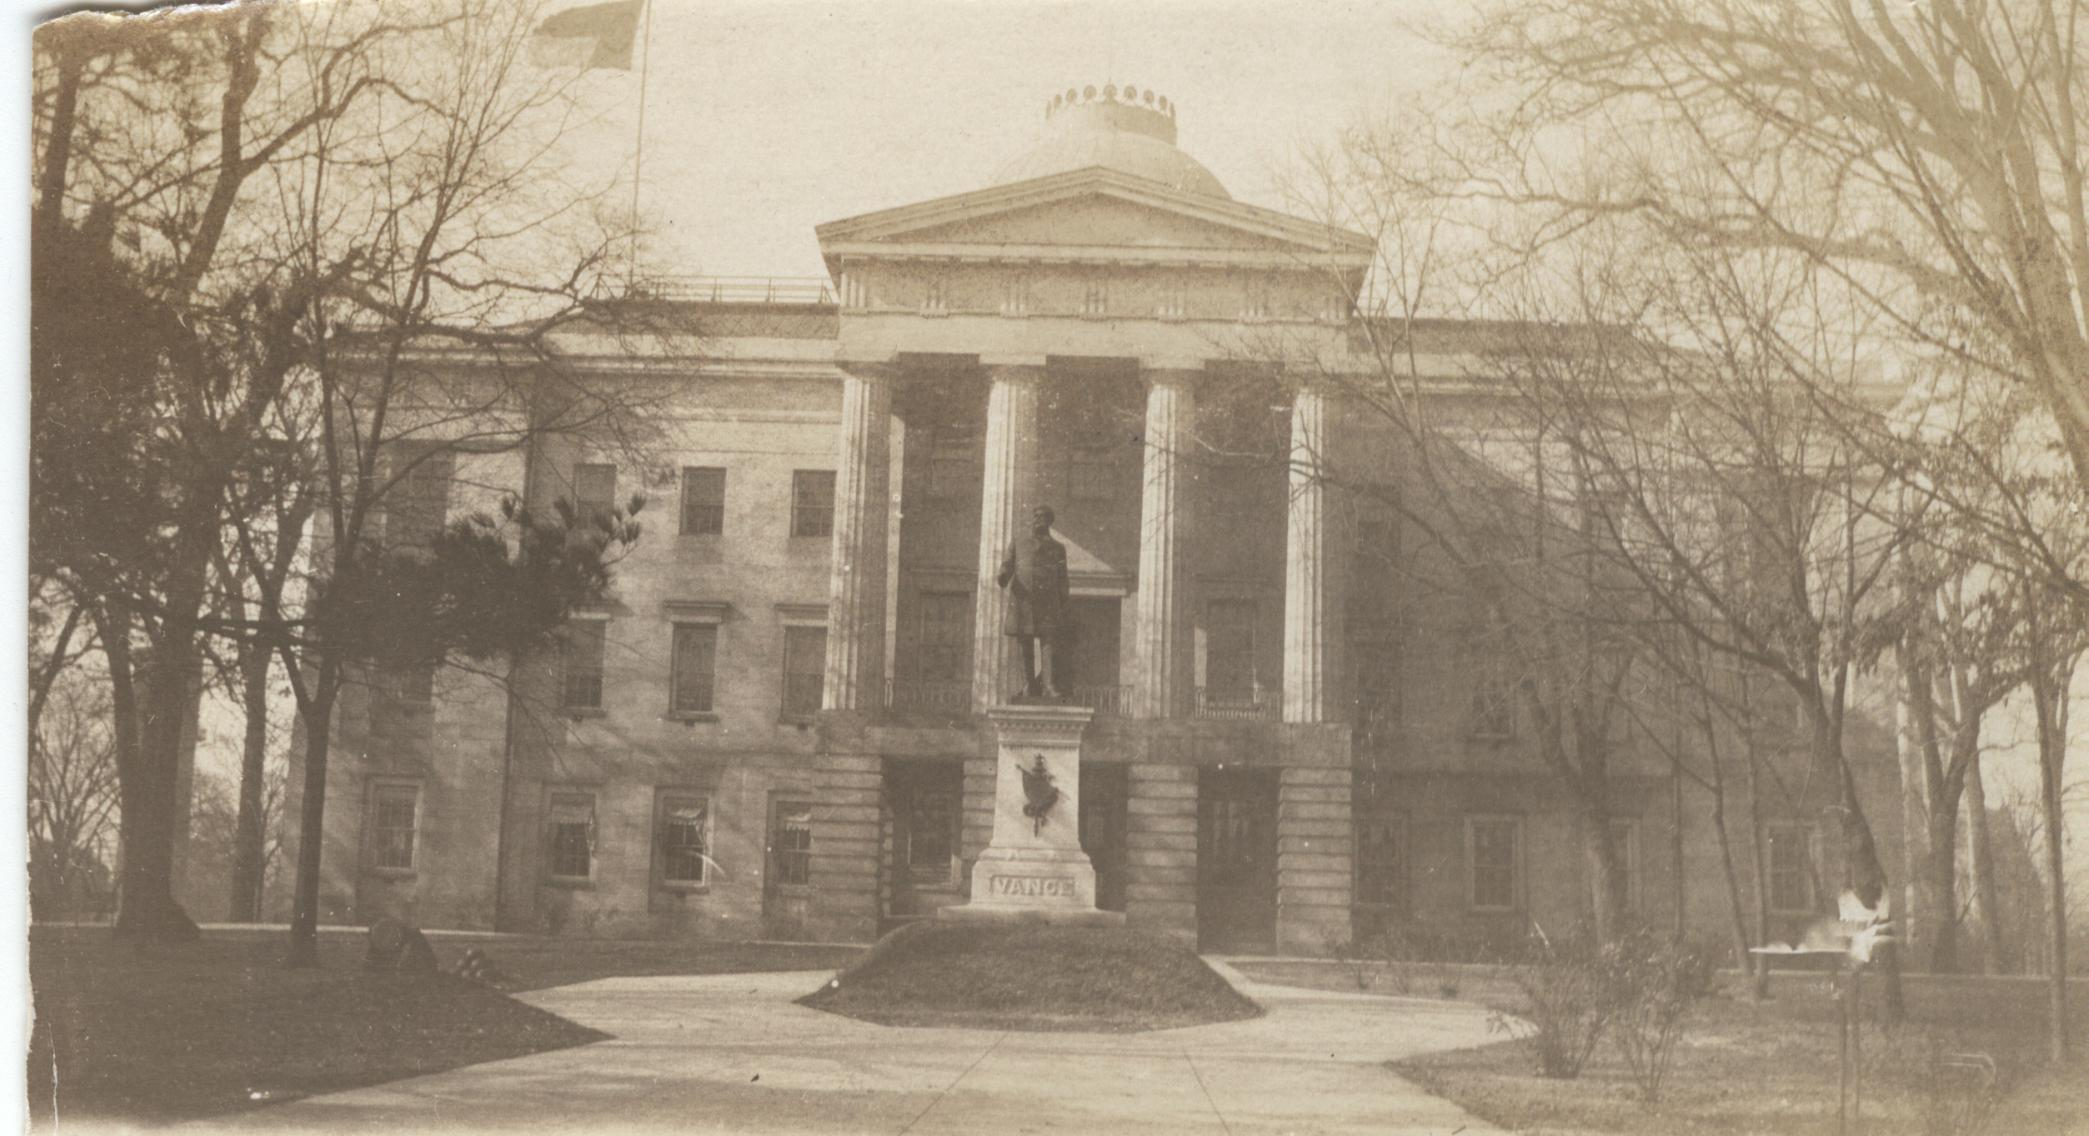 State Capitol Building 1908